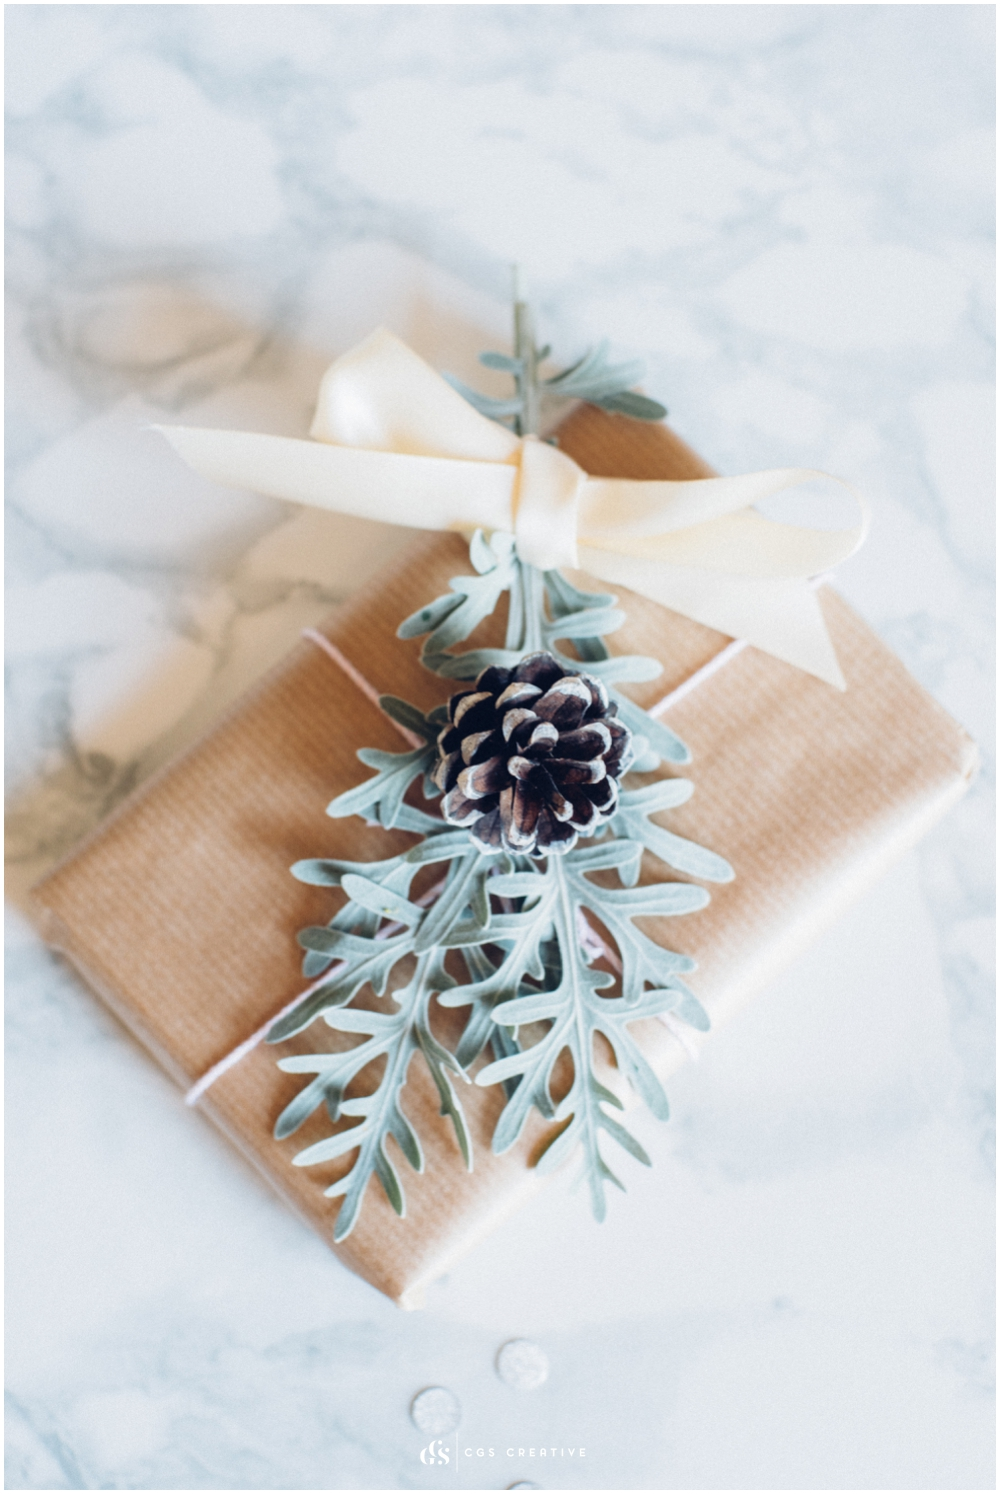 South African Gift Guide to Christmas by Roxy Hutton of CGScreative (1 of 1)-4.JPG